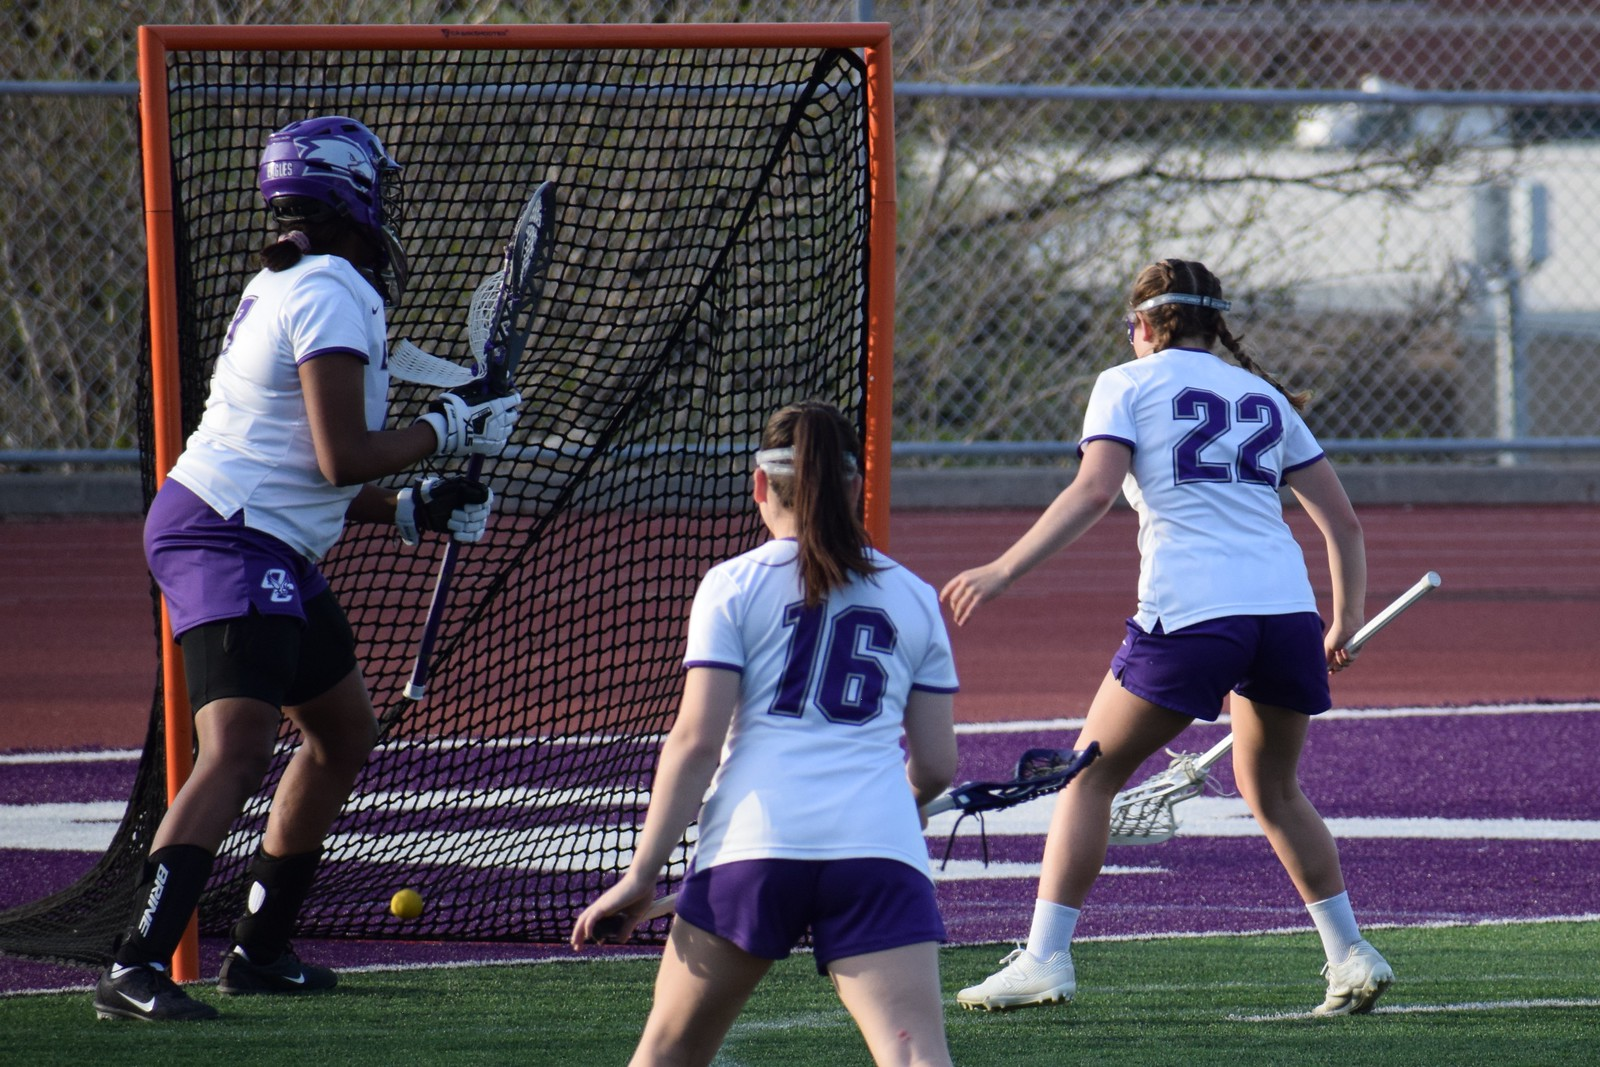 Varsity Game 4 - Lady Knights at Central: Second Half (04/26/21)